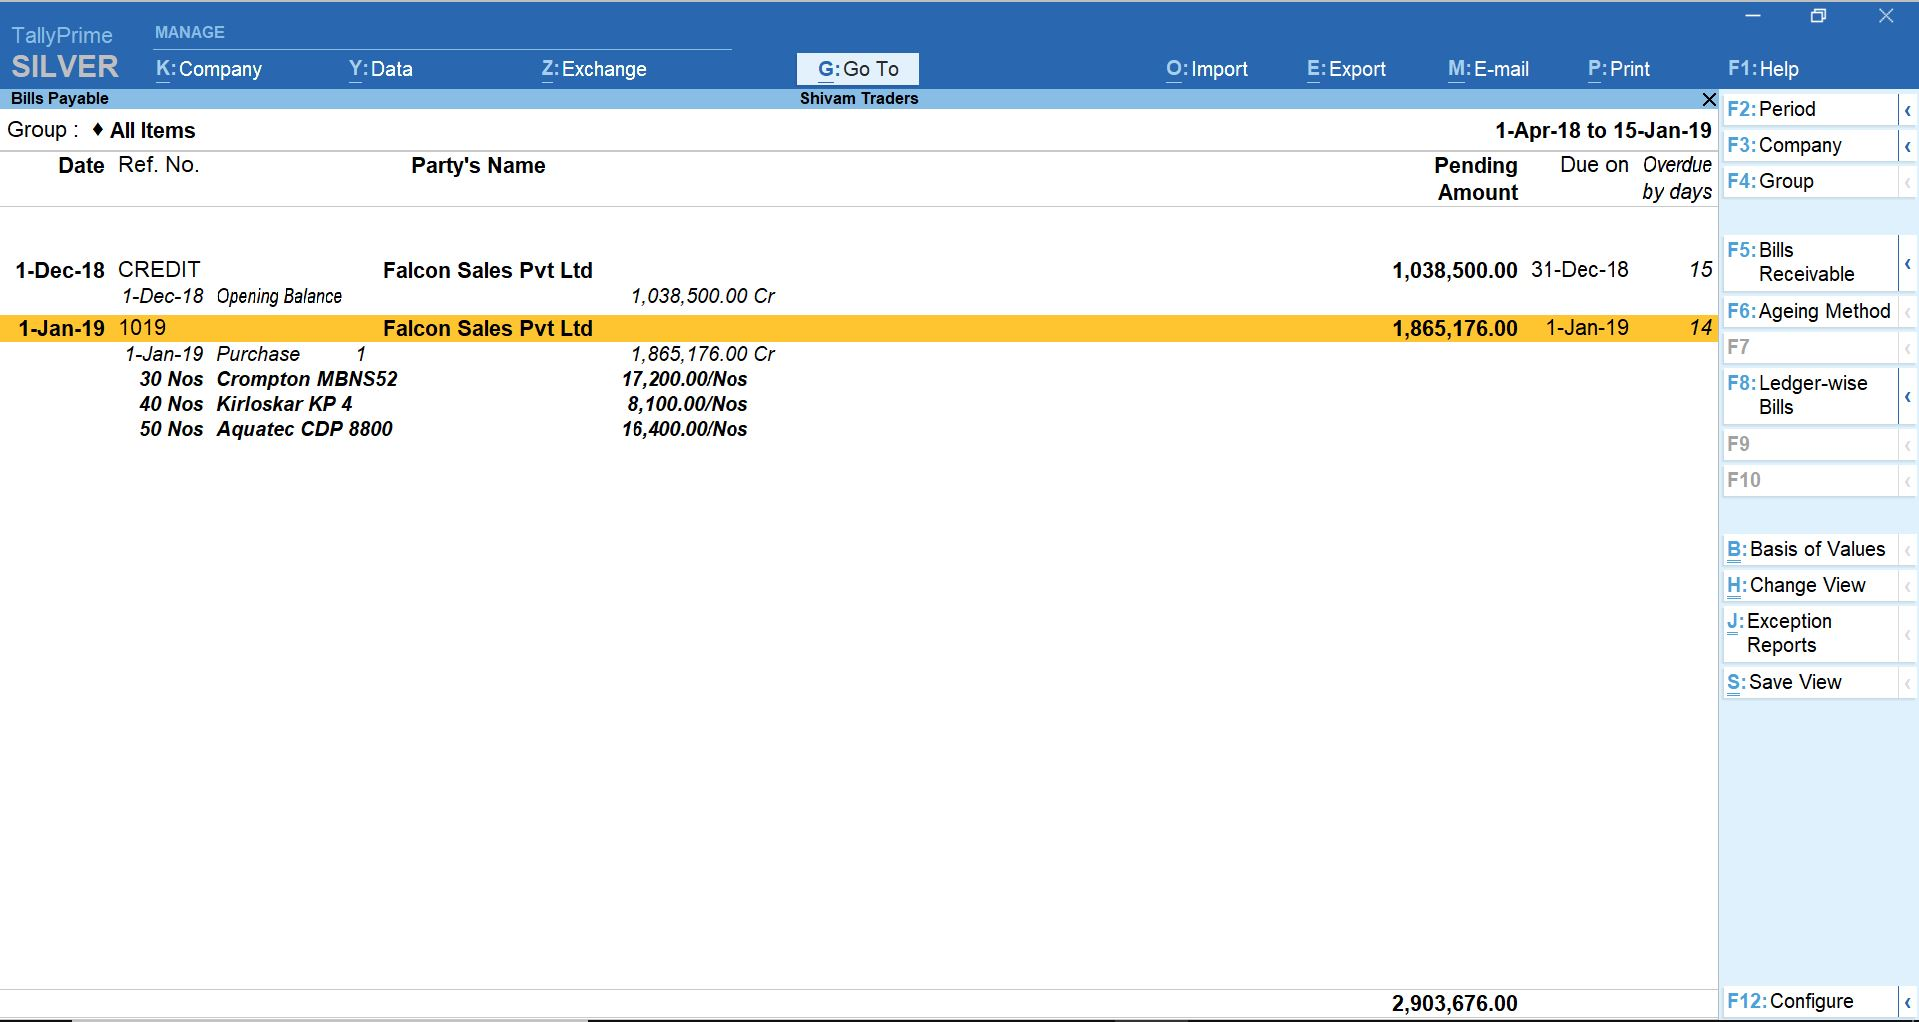 Accounts payables in TallyPrime